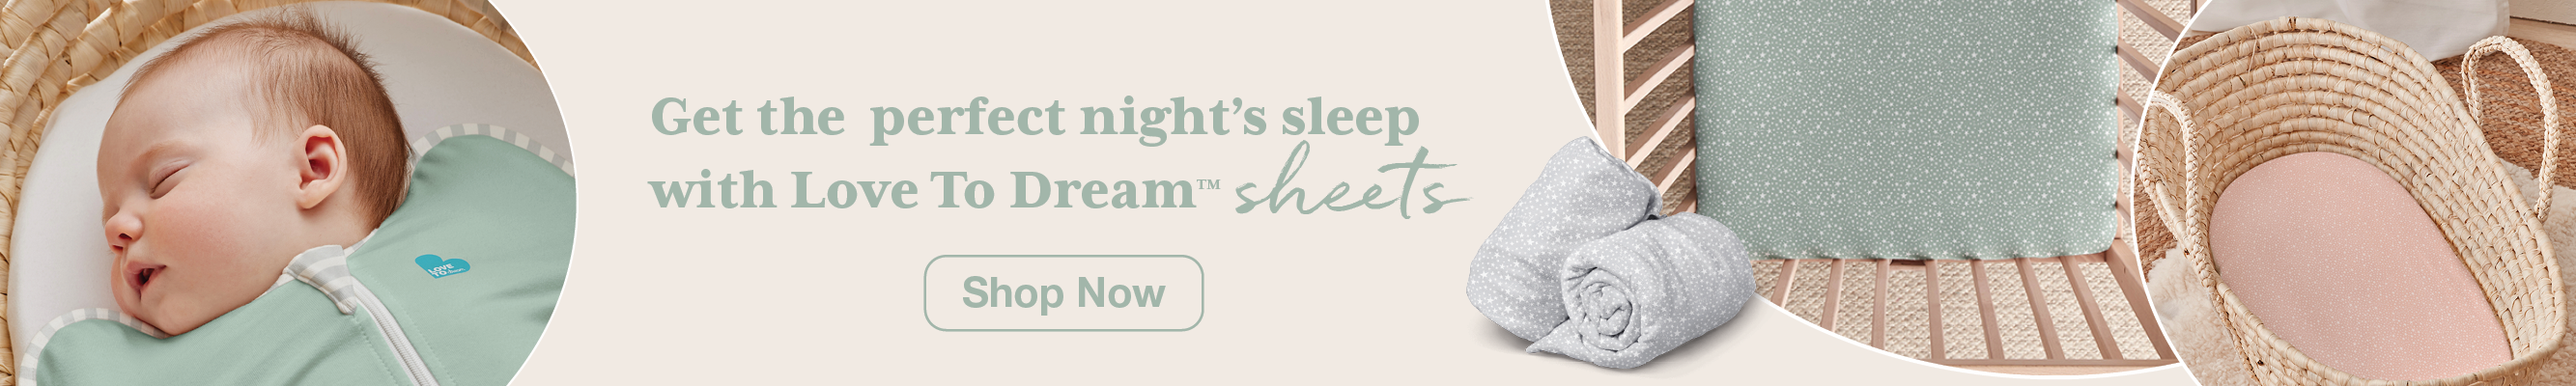 sheetlaunch-promostripd.png